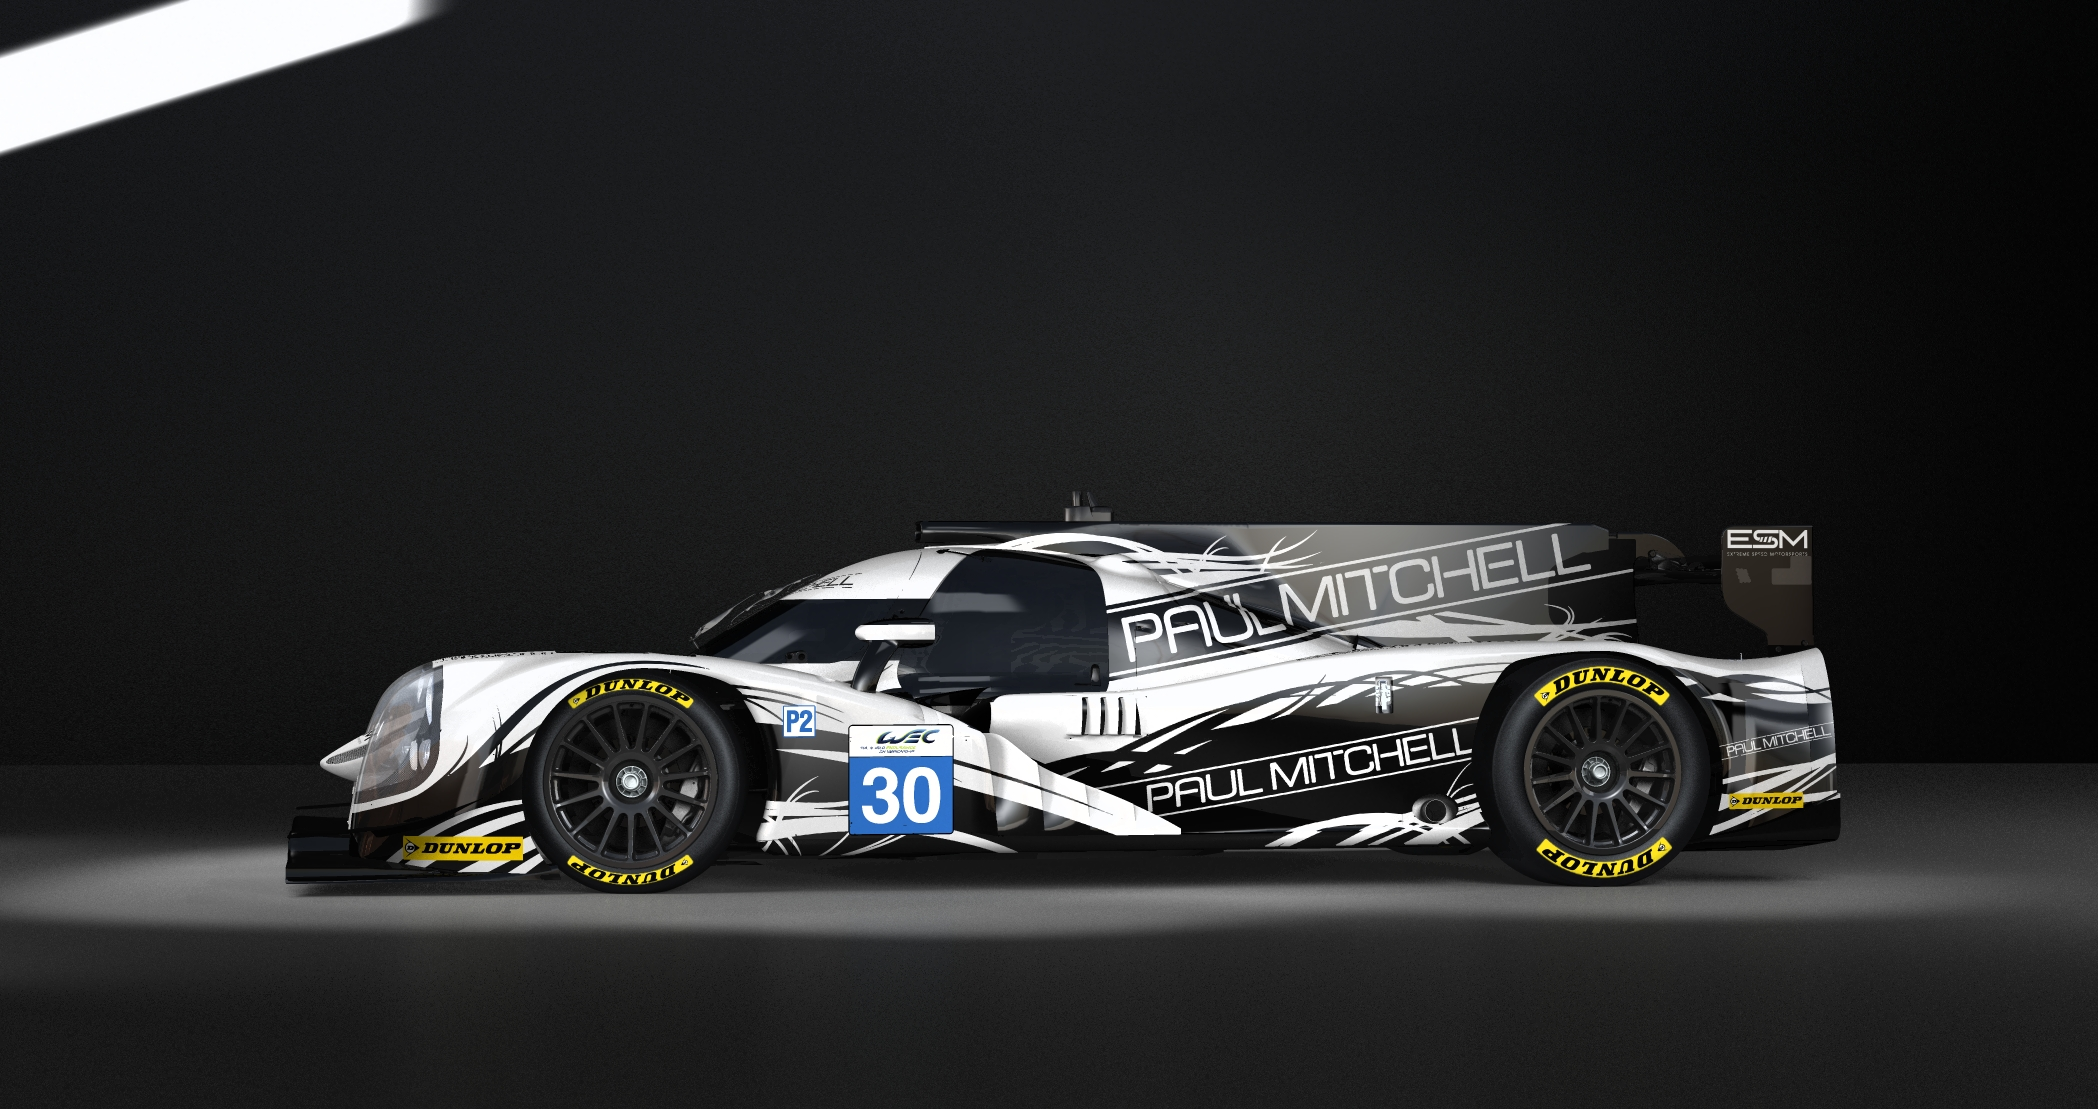 Tequila Patrón Announces Paul Mitchell as Primary Sponsor for 24 Hours of Le Mans